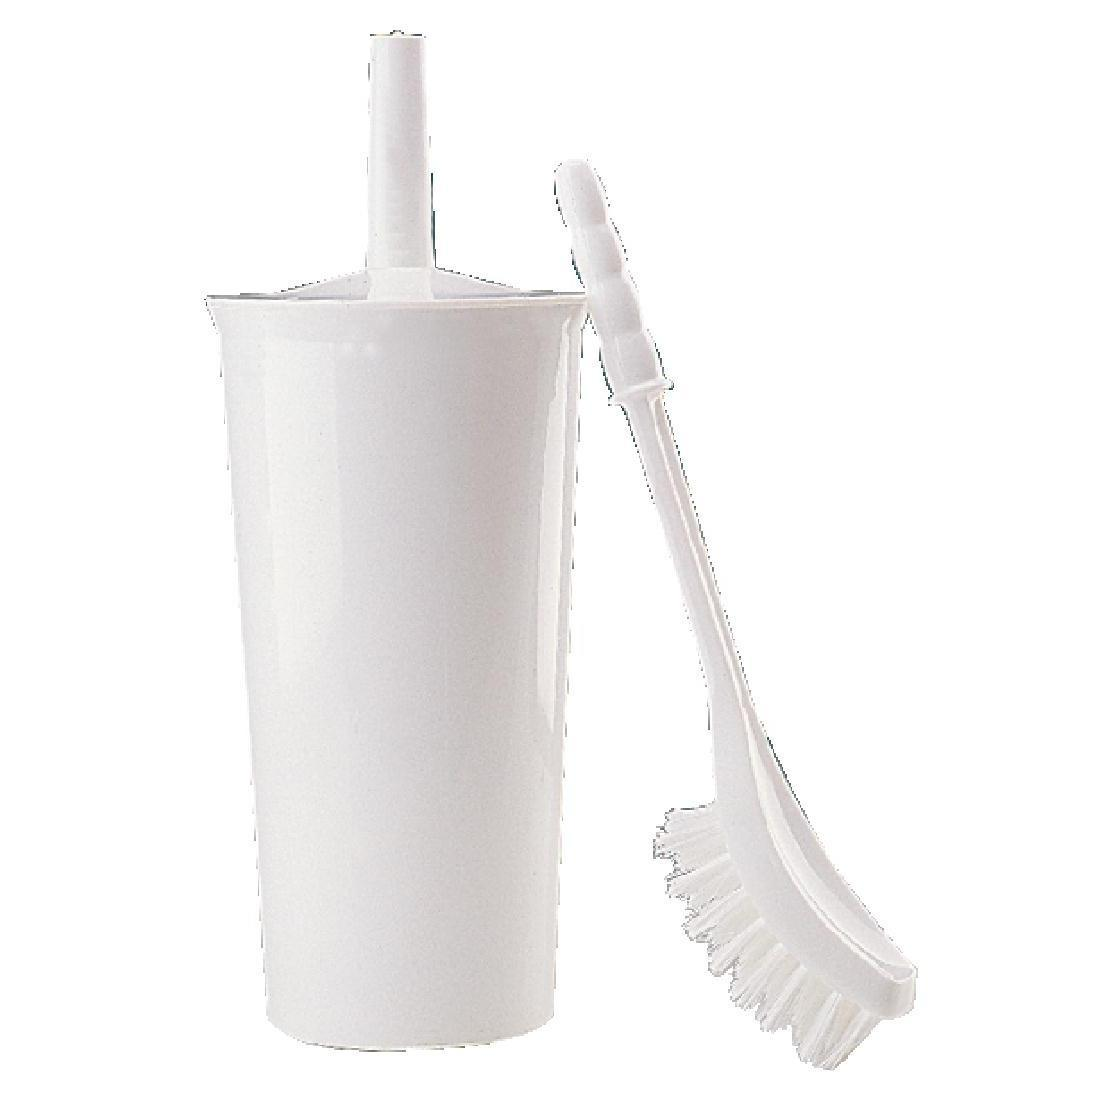 Jantex Toilet Brush and Holder White